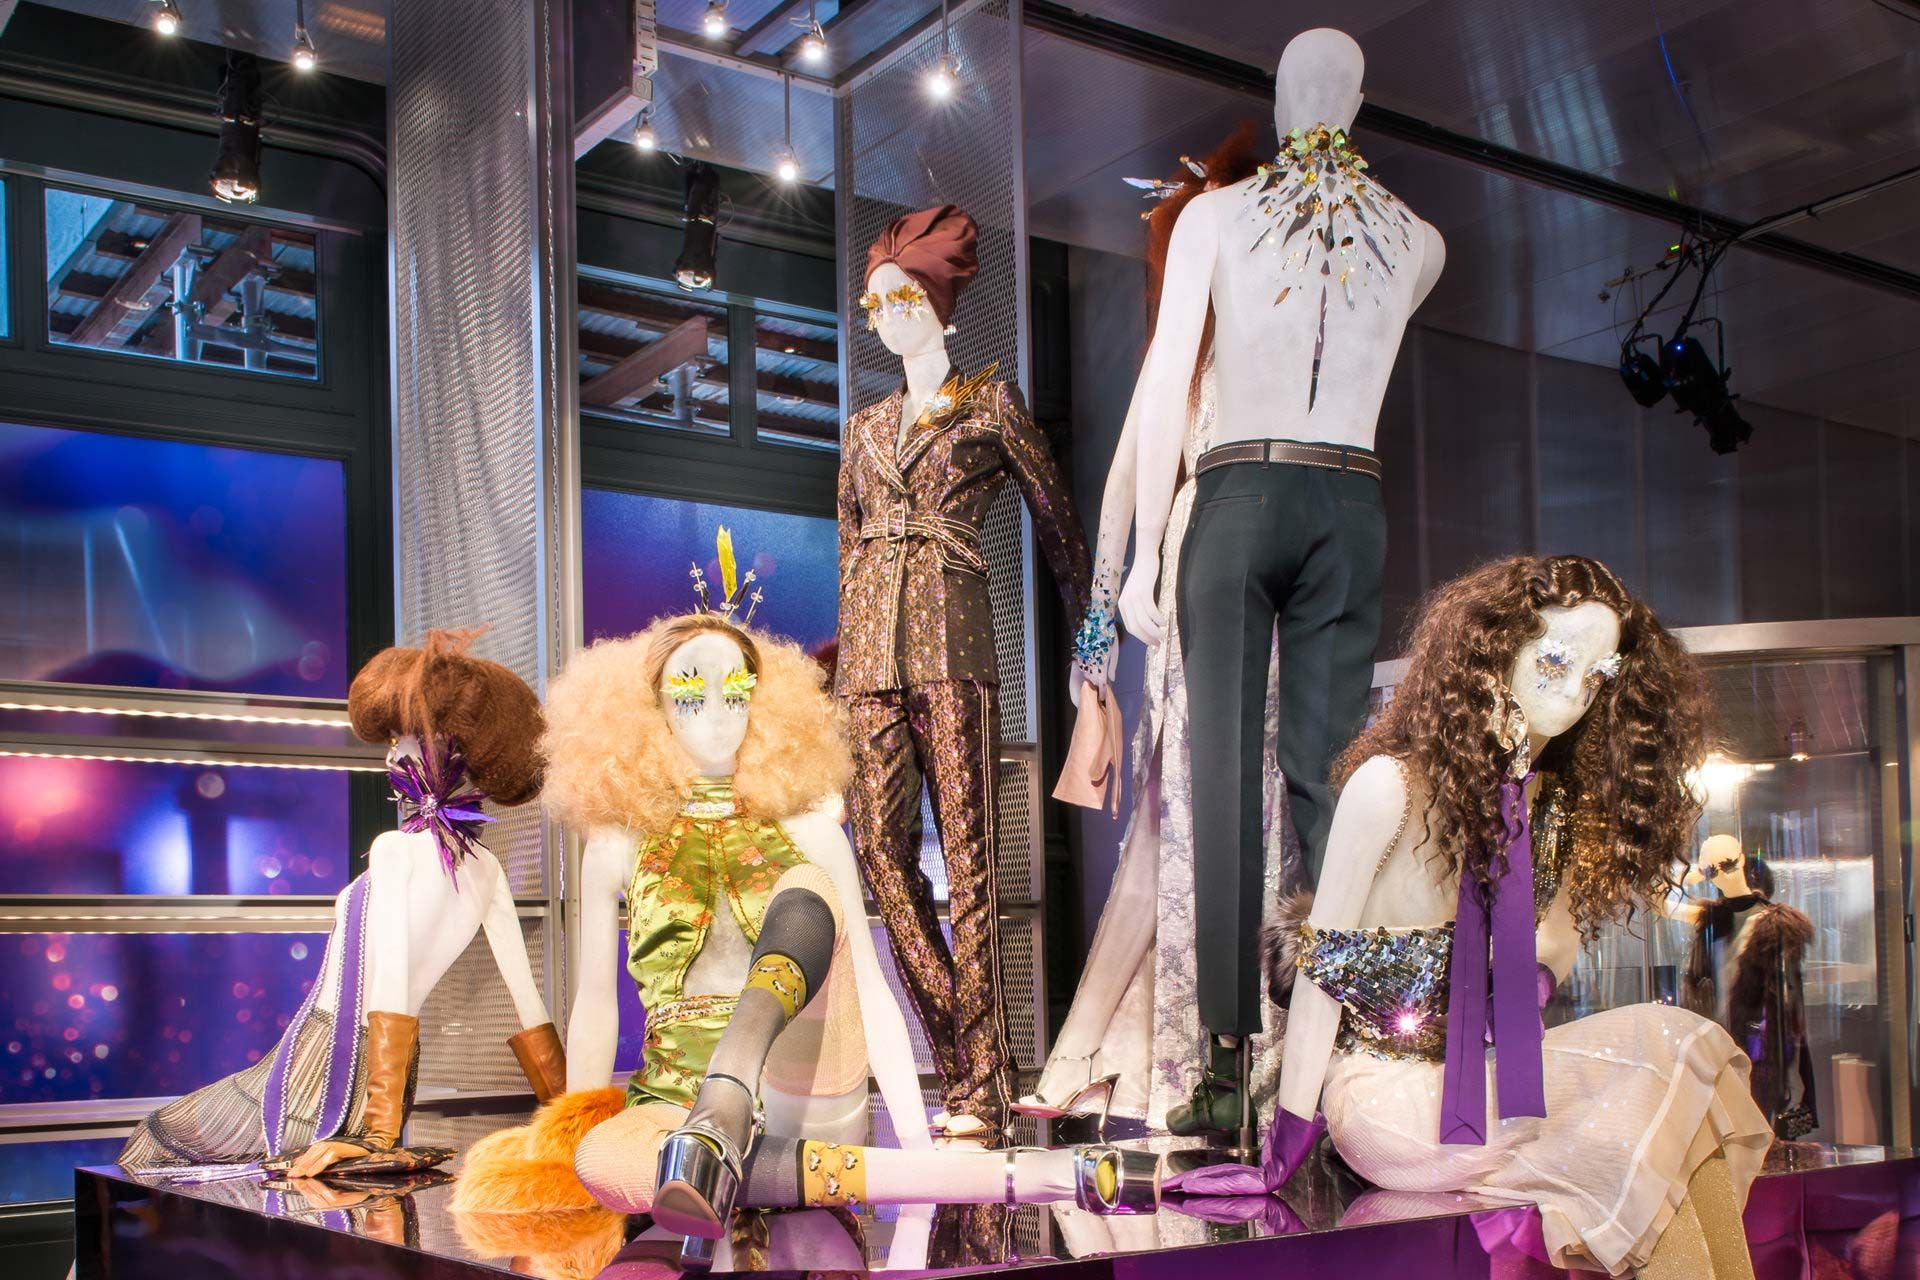 Window display ideas  prada  the iconoclasts  display ideas  pinterest  visual